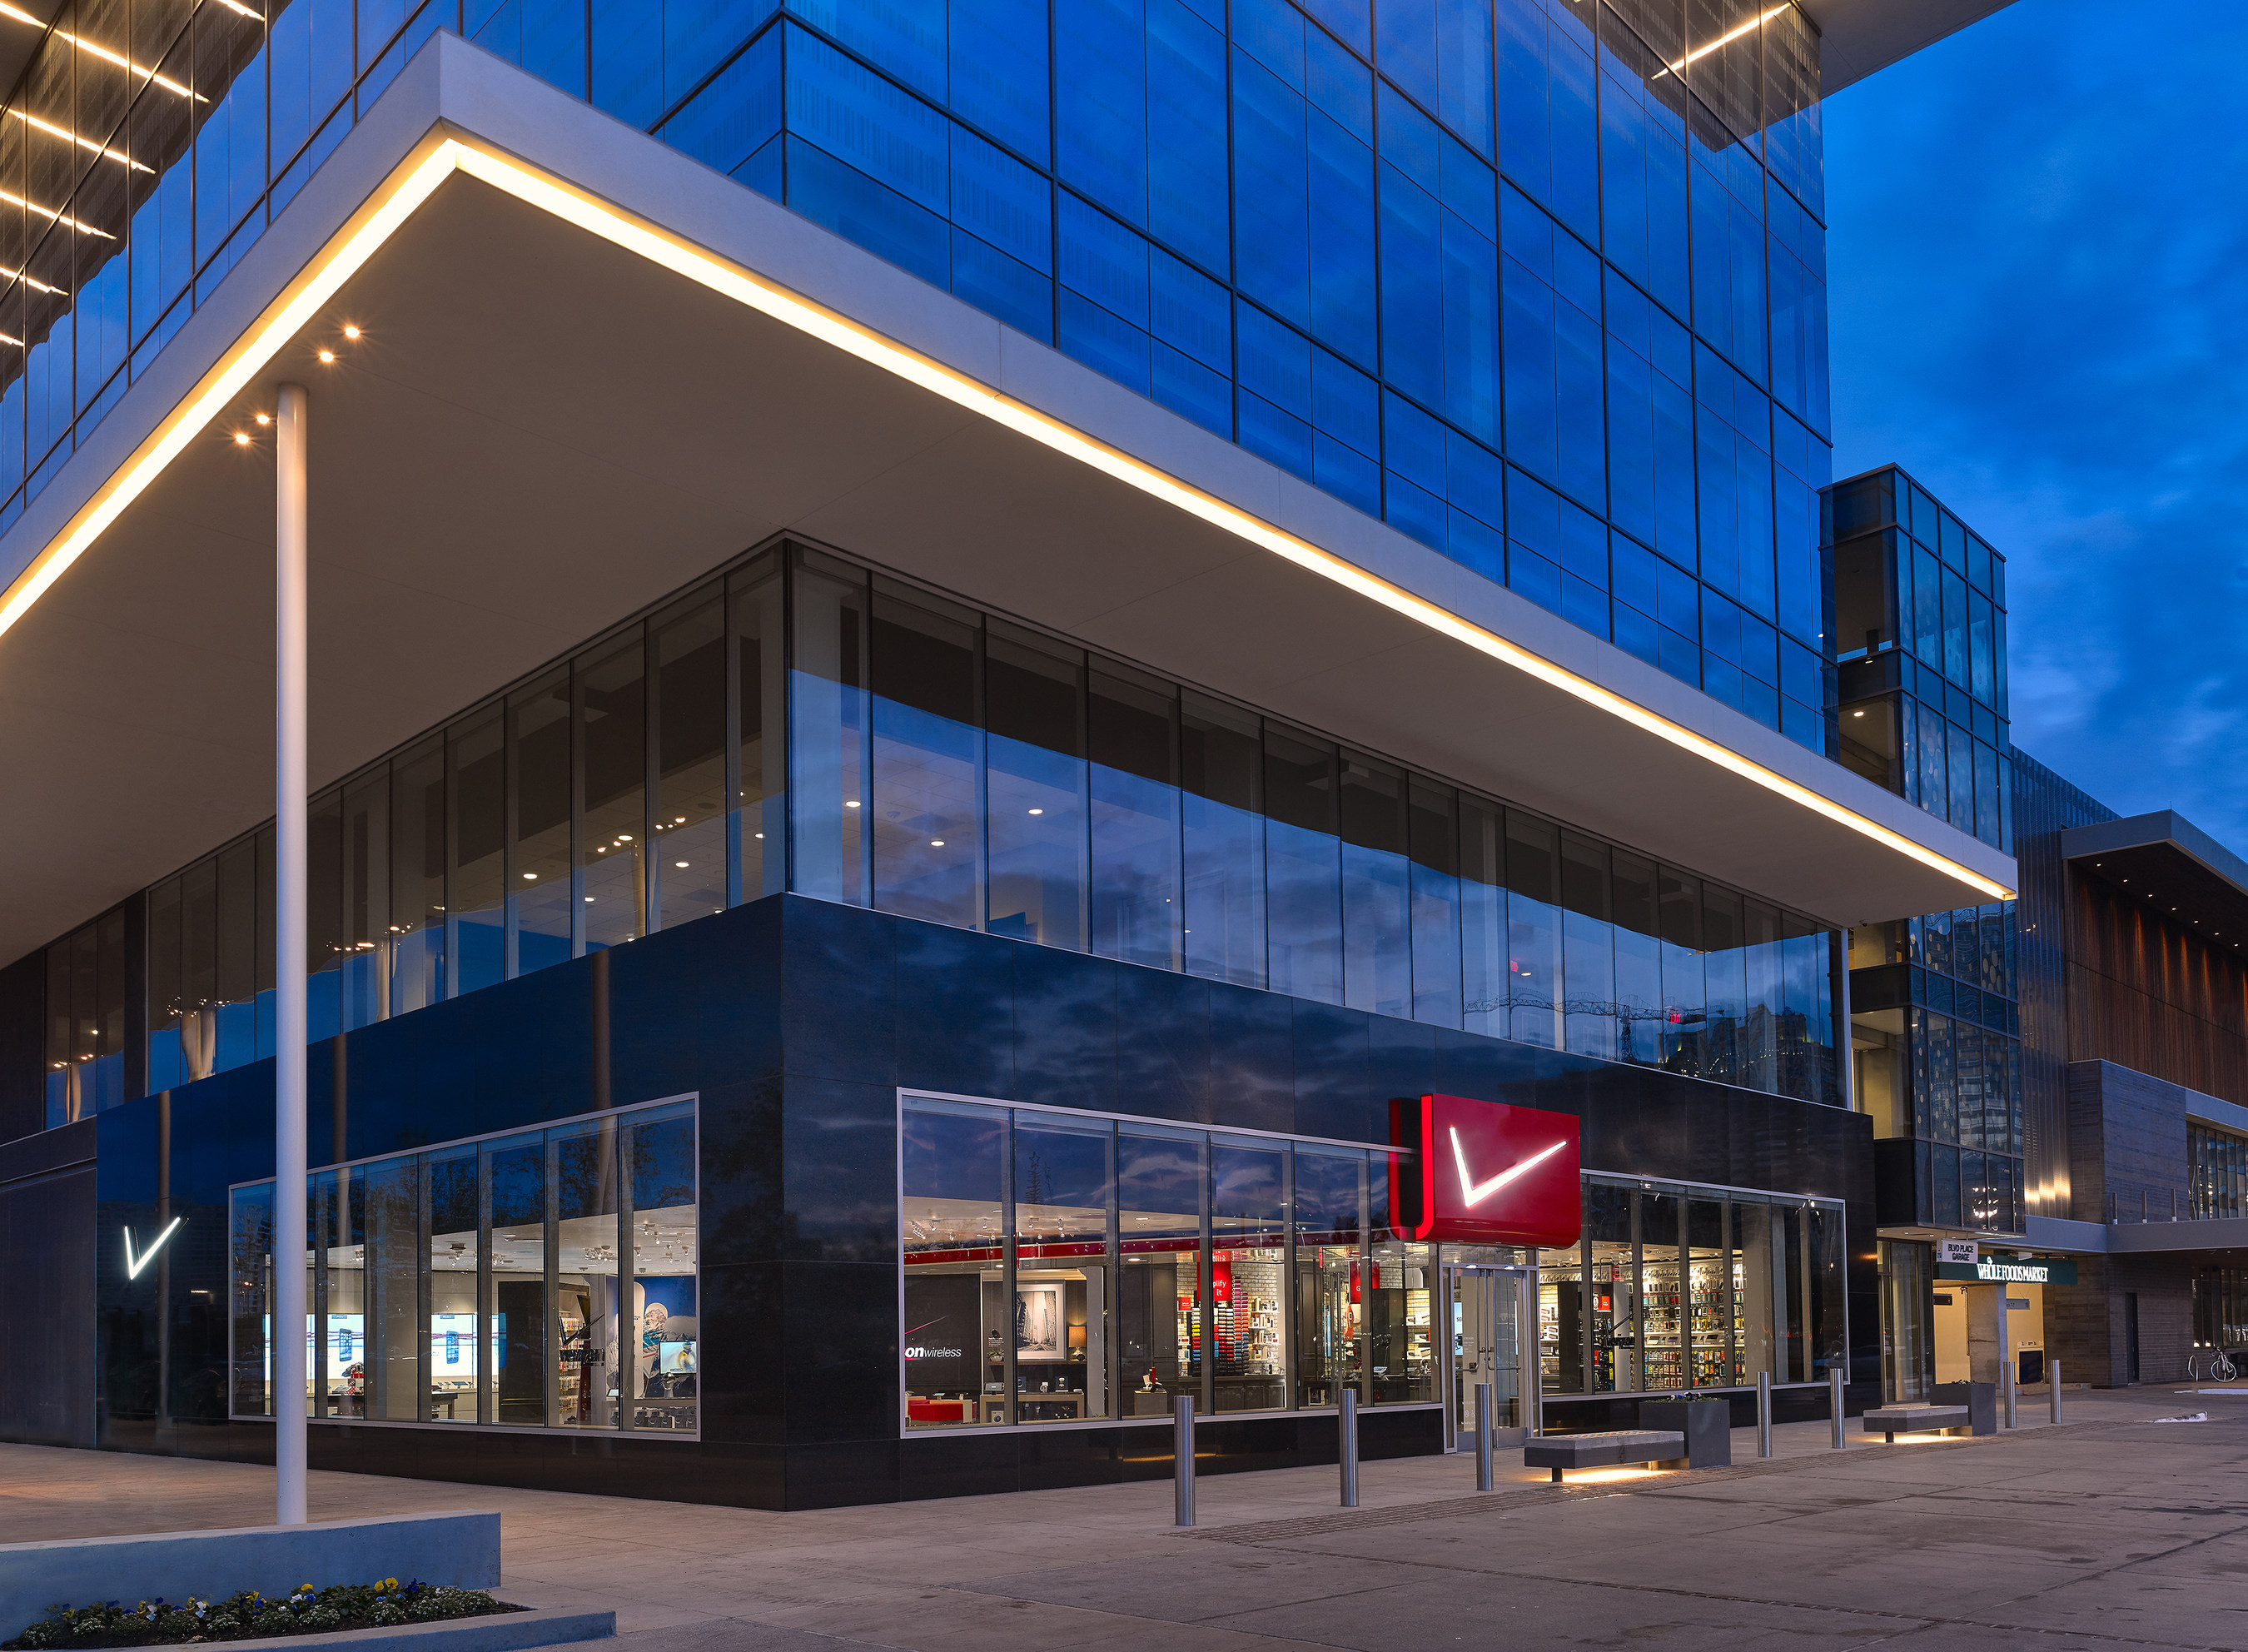 MCA installs a DAS for the Verizon Wireless Houston Corporate Office and Stores